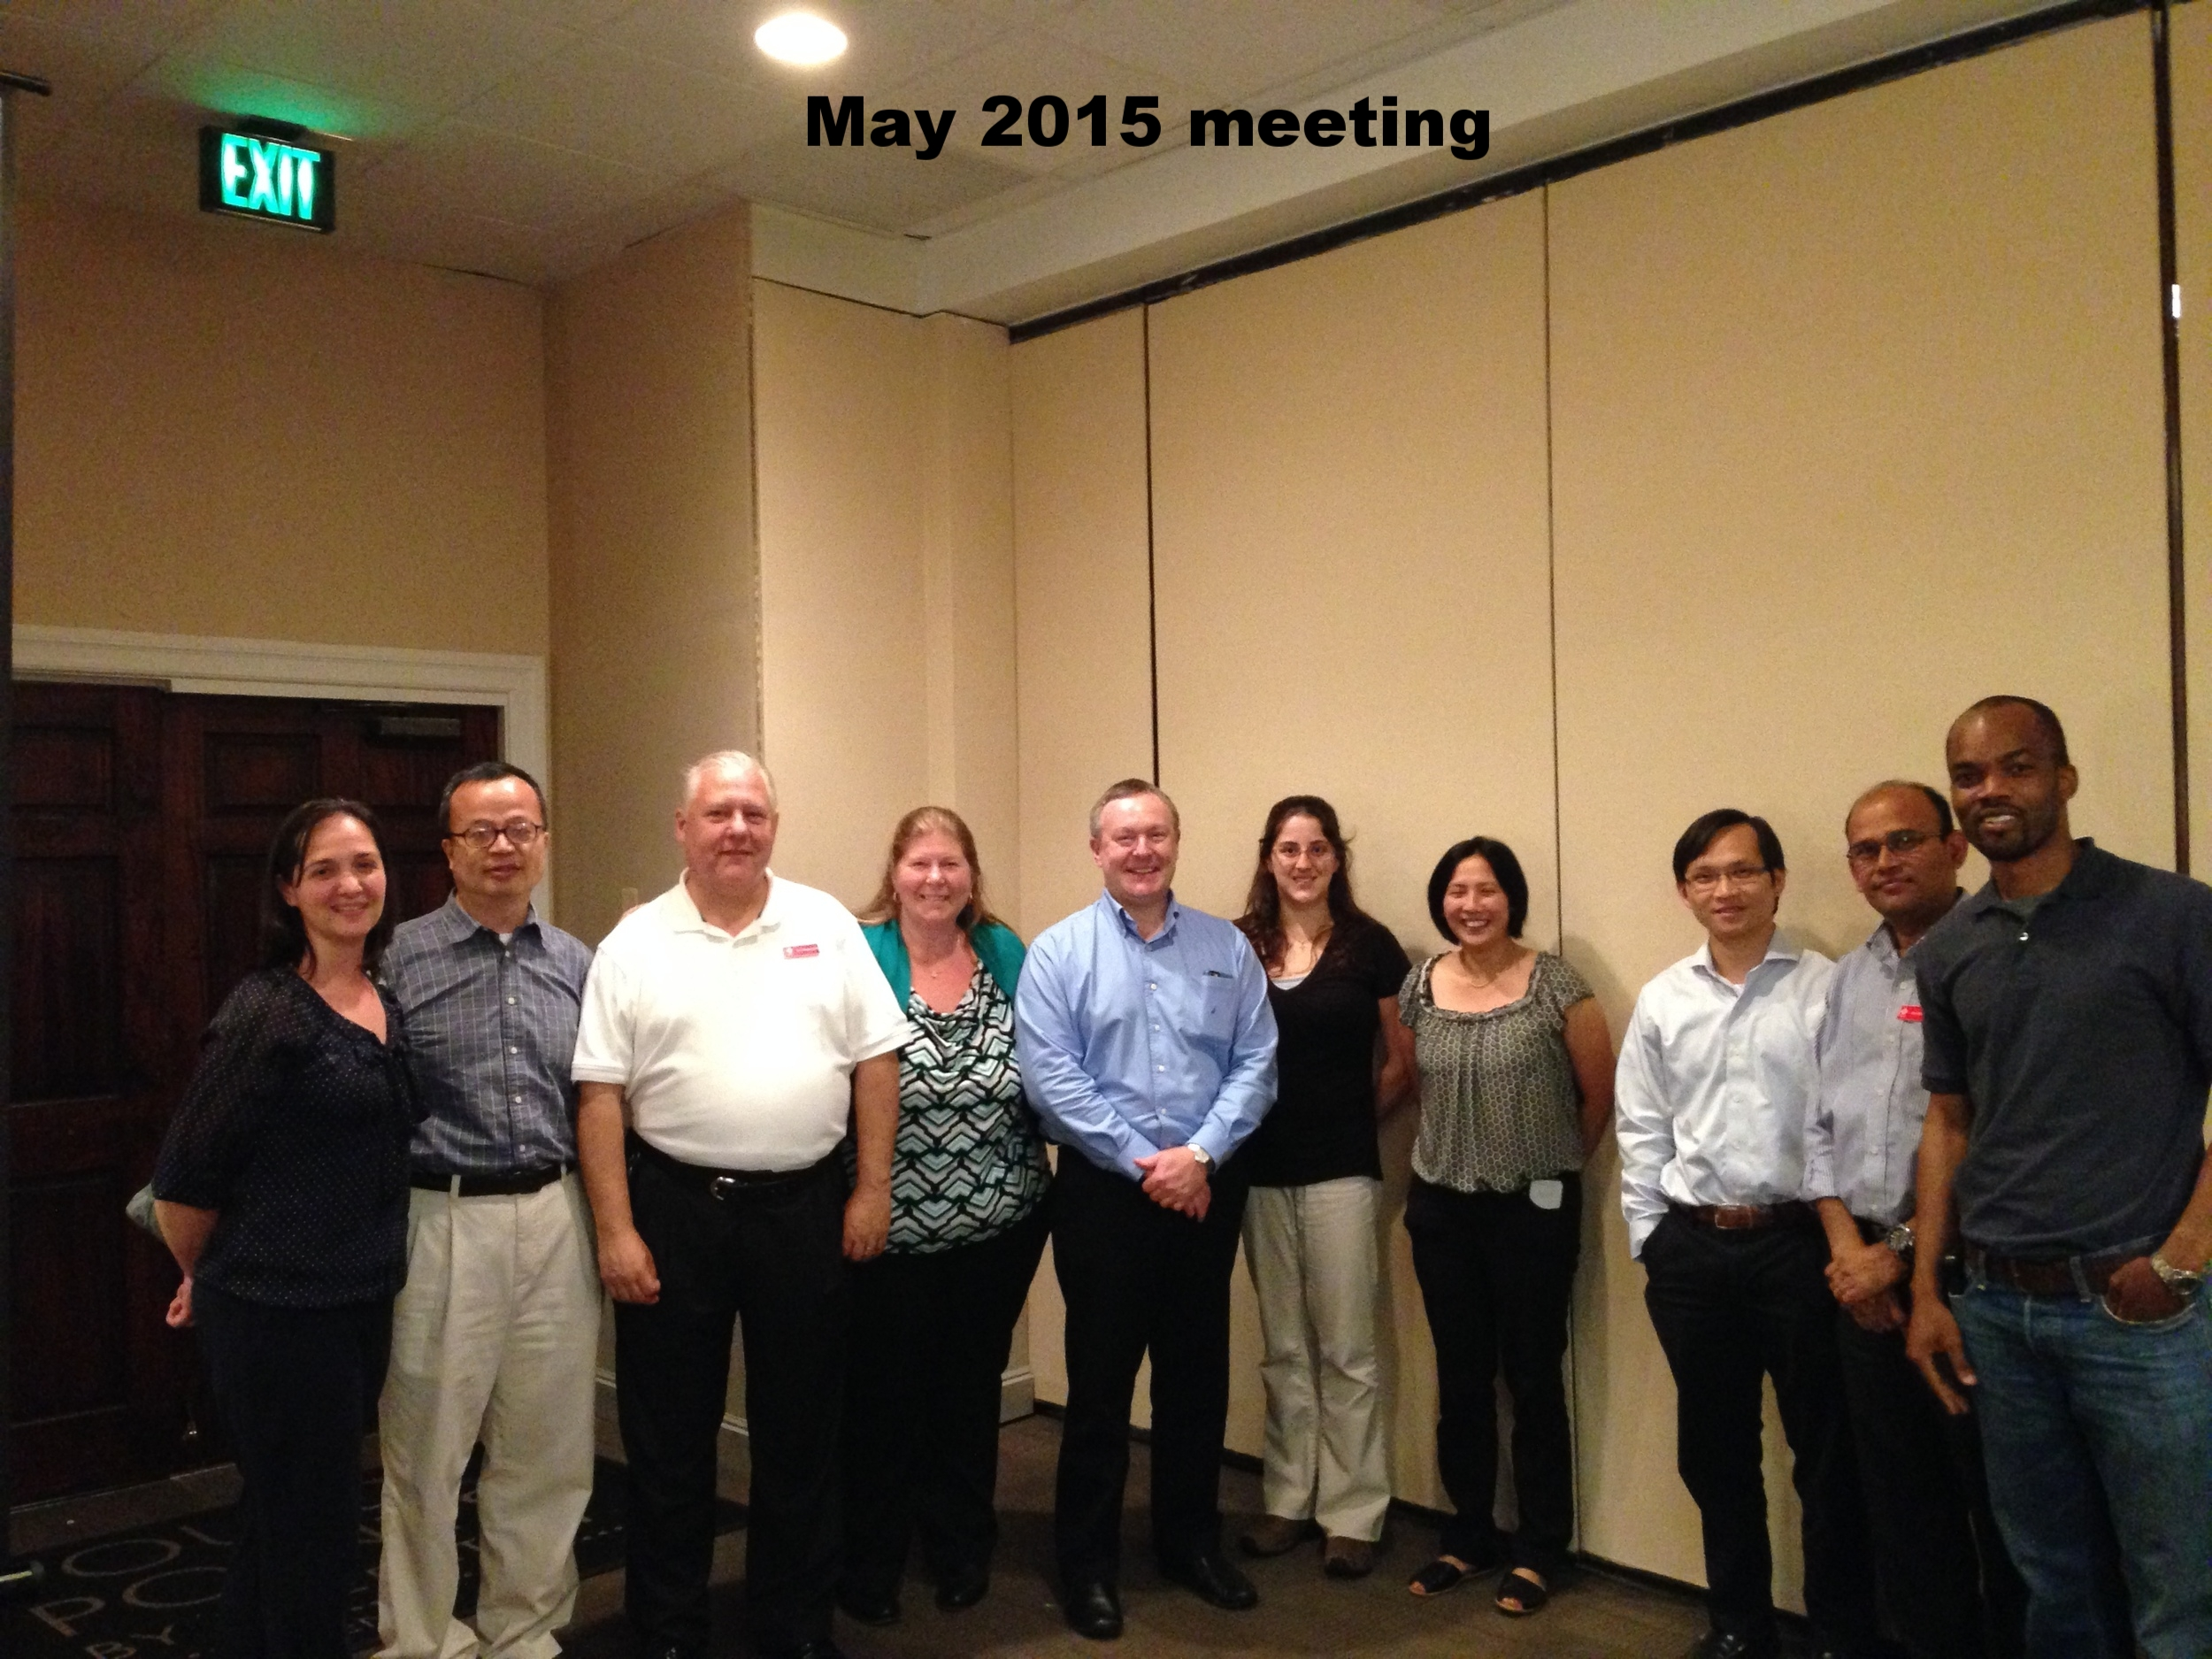 csscboard meeting 2015.JPG